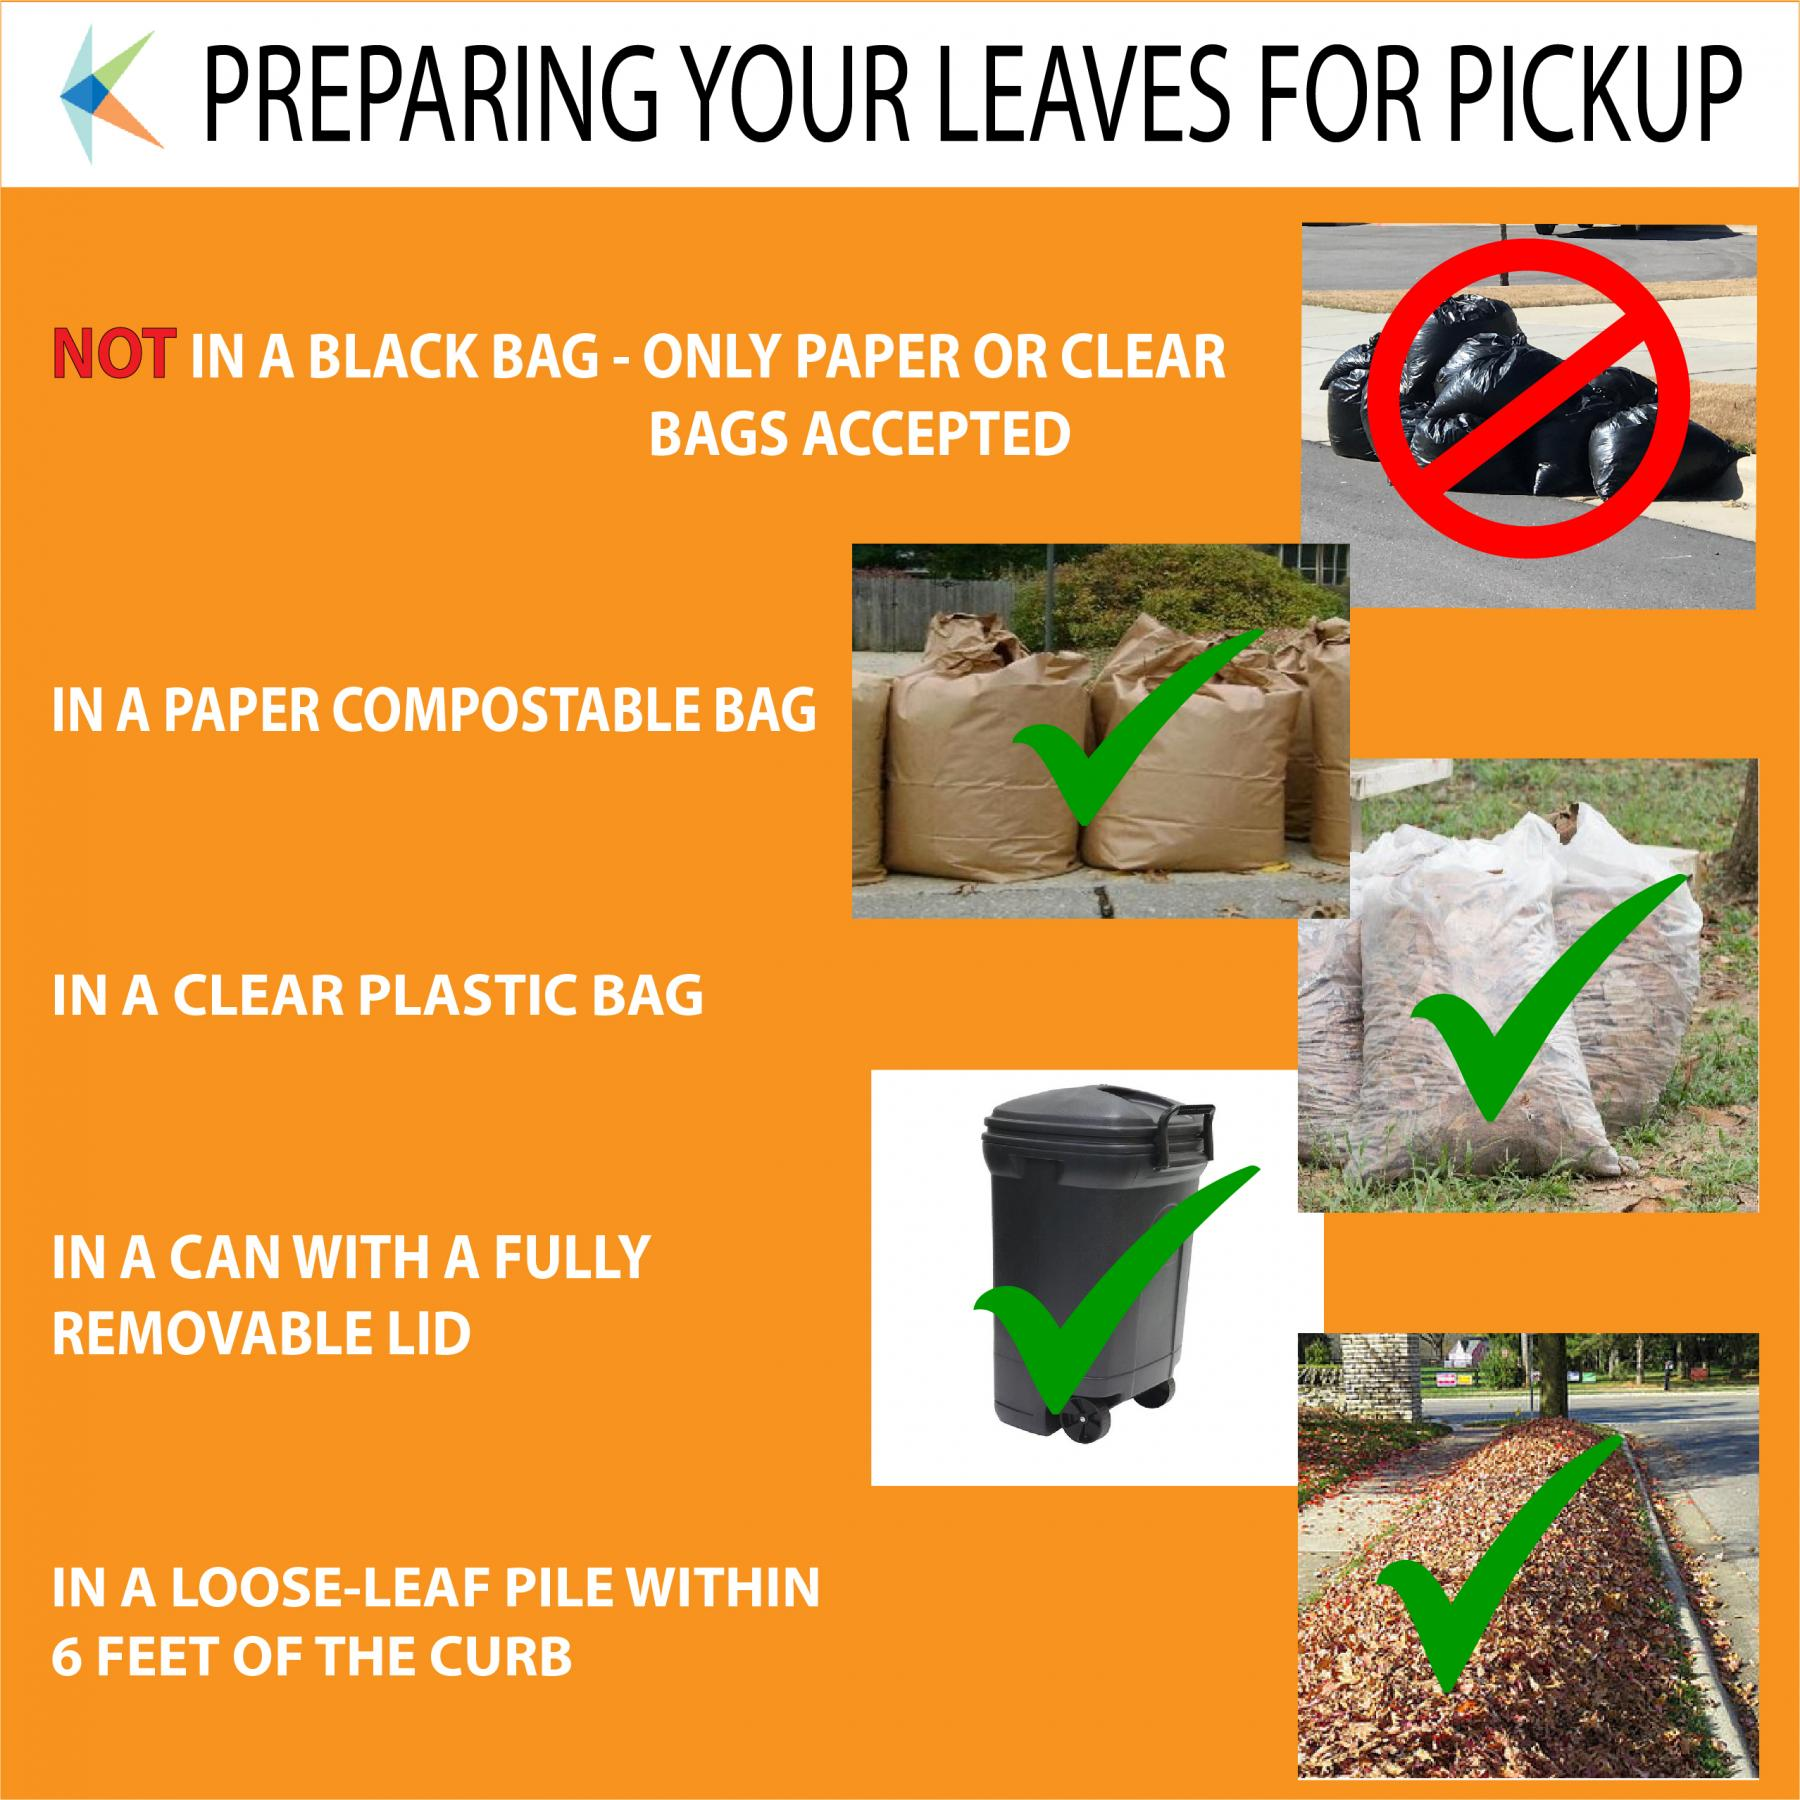 Use Clear and Paper Bags